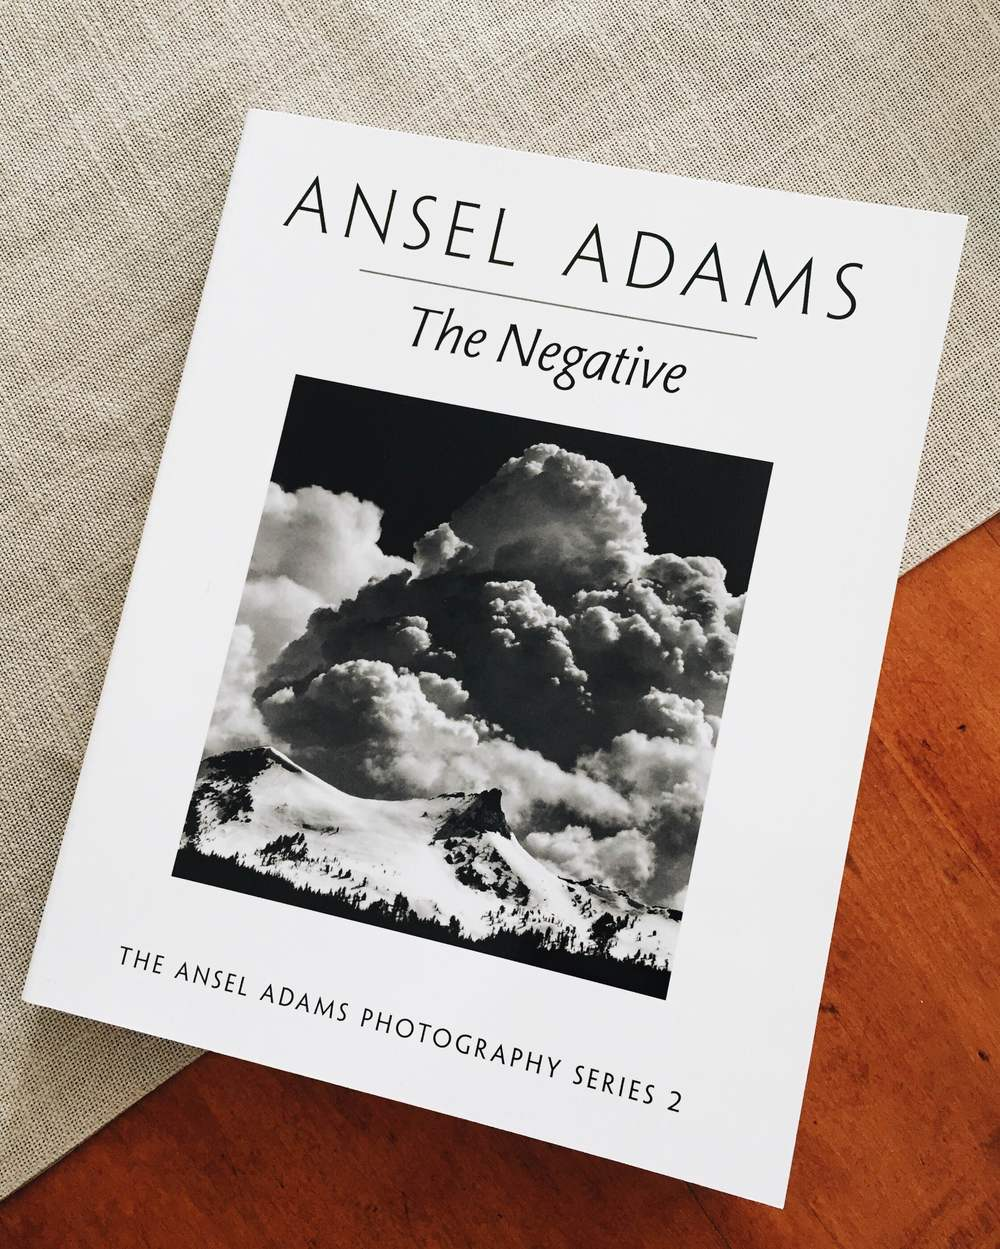 Ansel Adams Photography, Book 2 288 Pages June 1 1995 Publisher: Ansel Adams